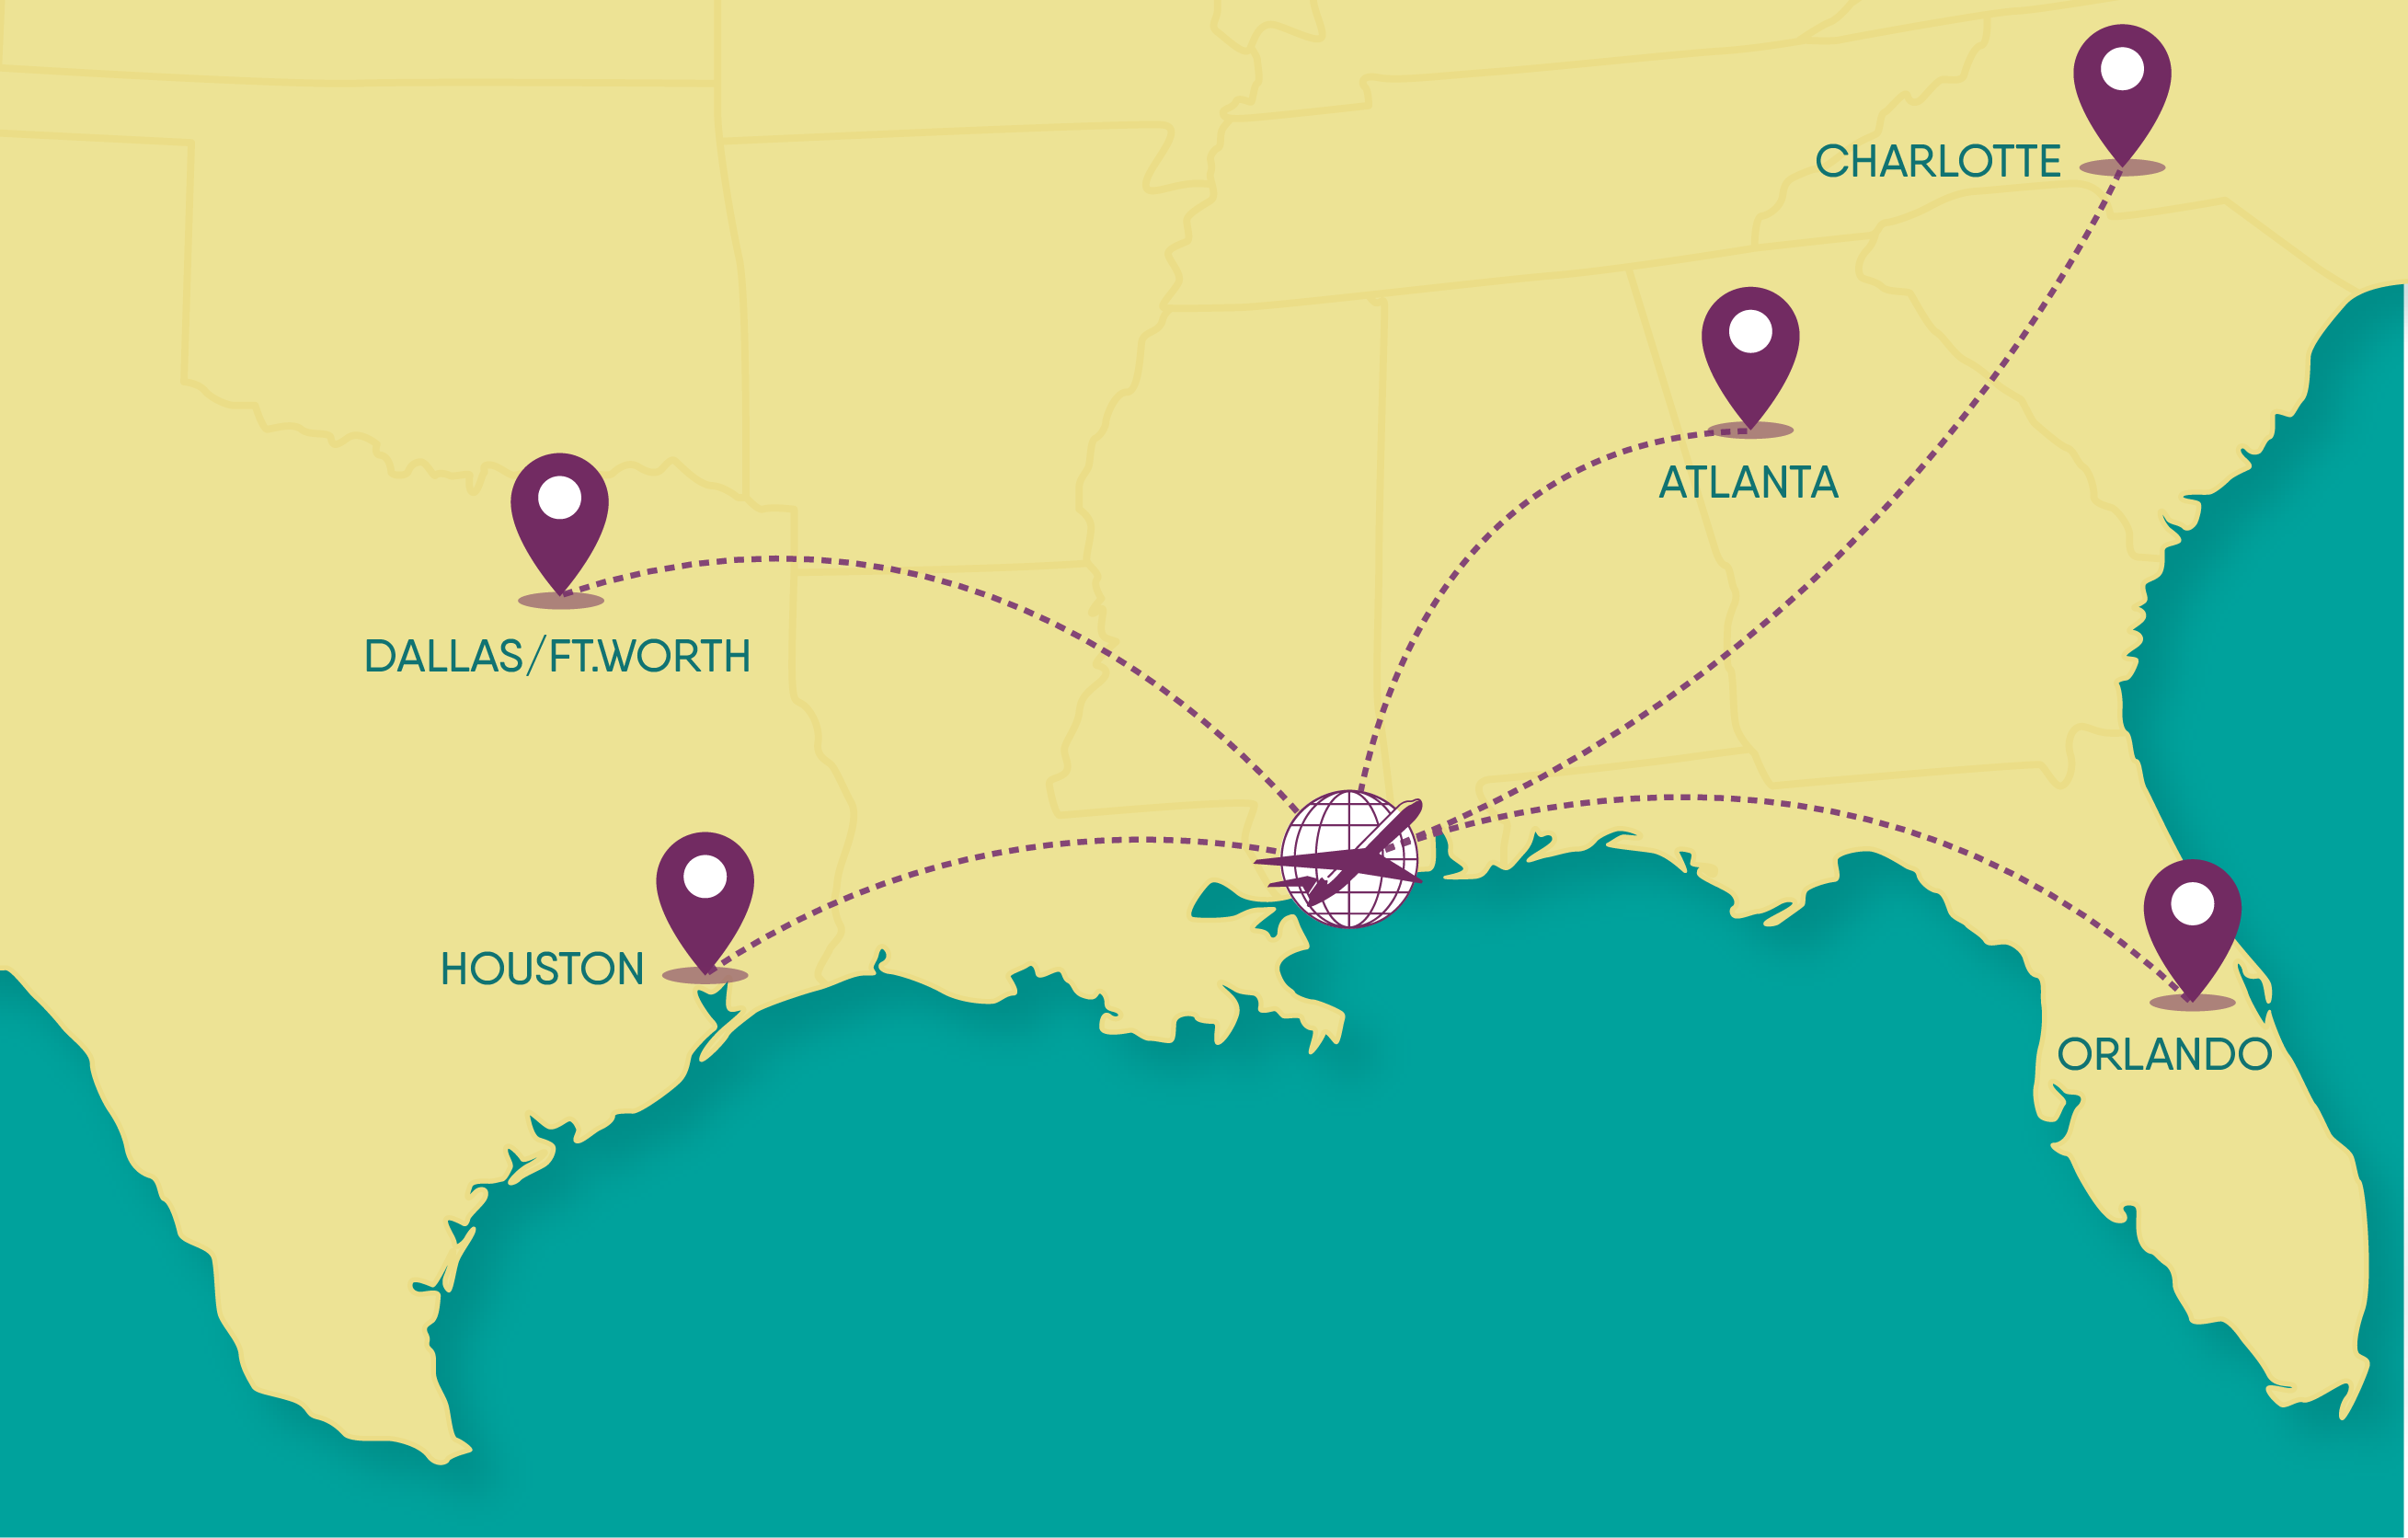 Gulfport Airport can fly to Houston, Dallas/Fort Worth, Atlanta, Charlotte and Orlando!